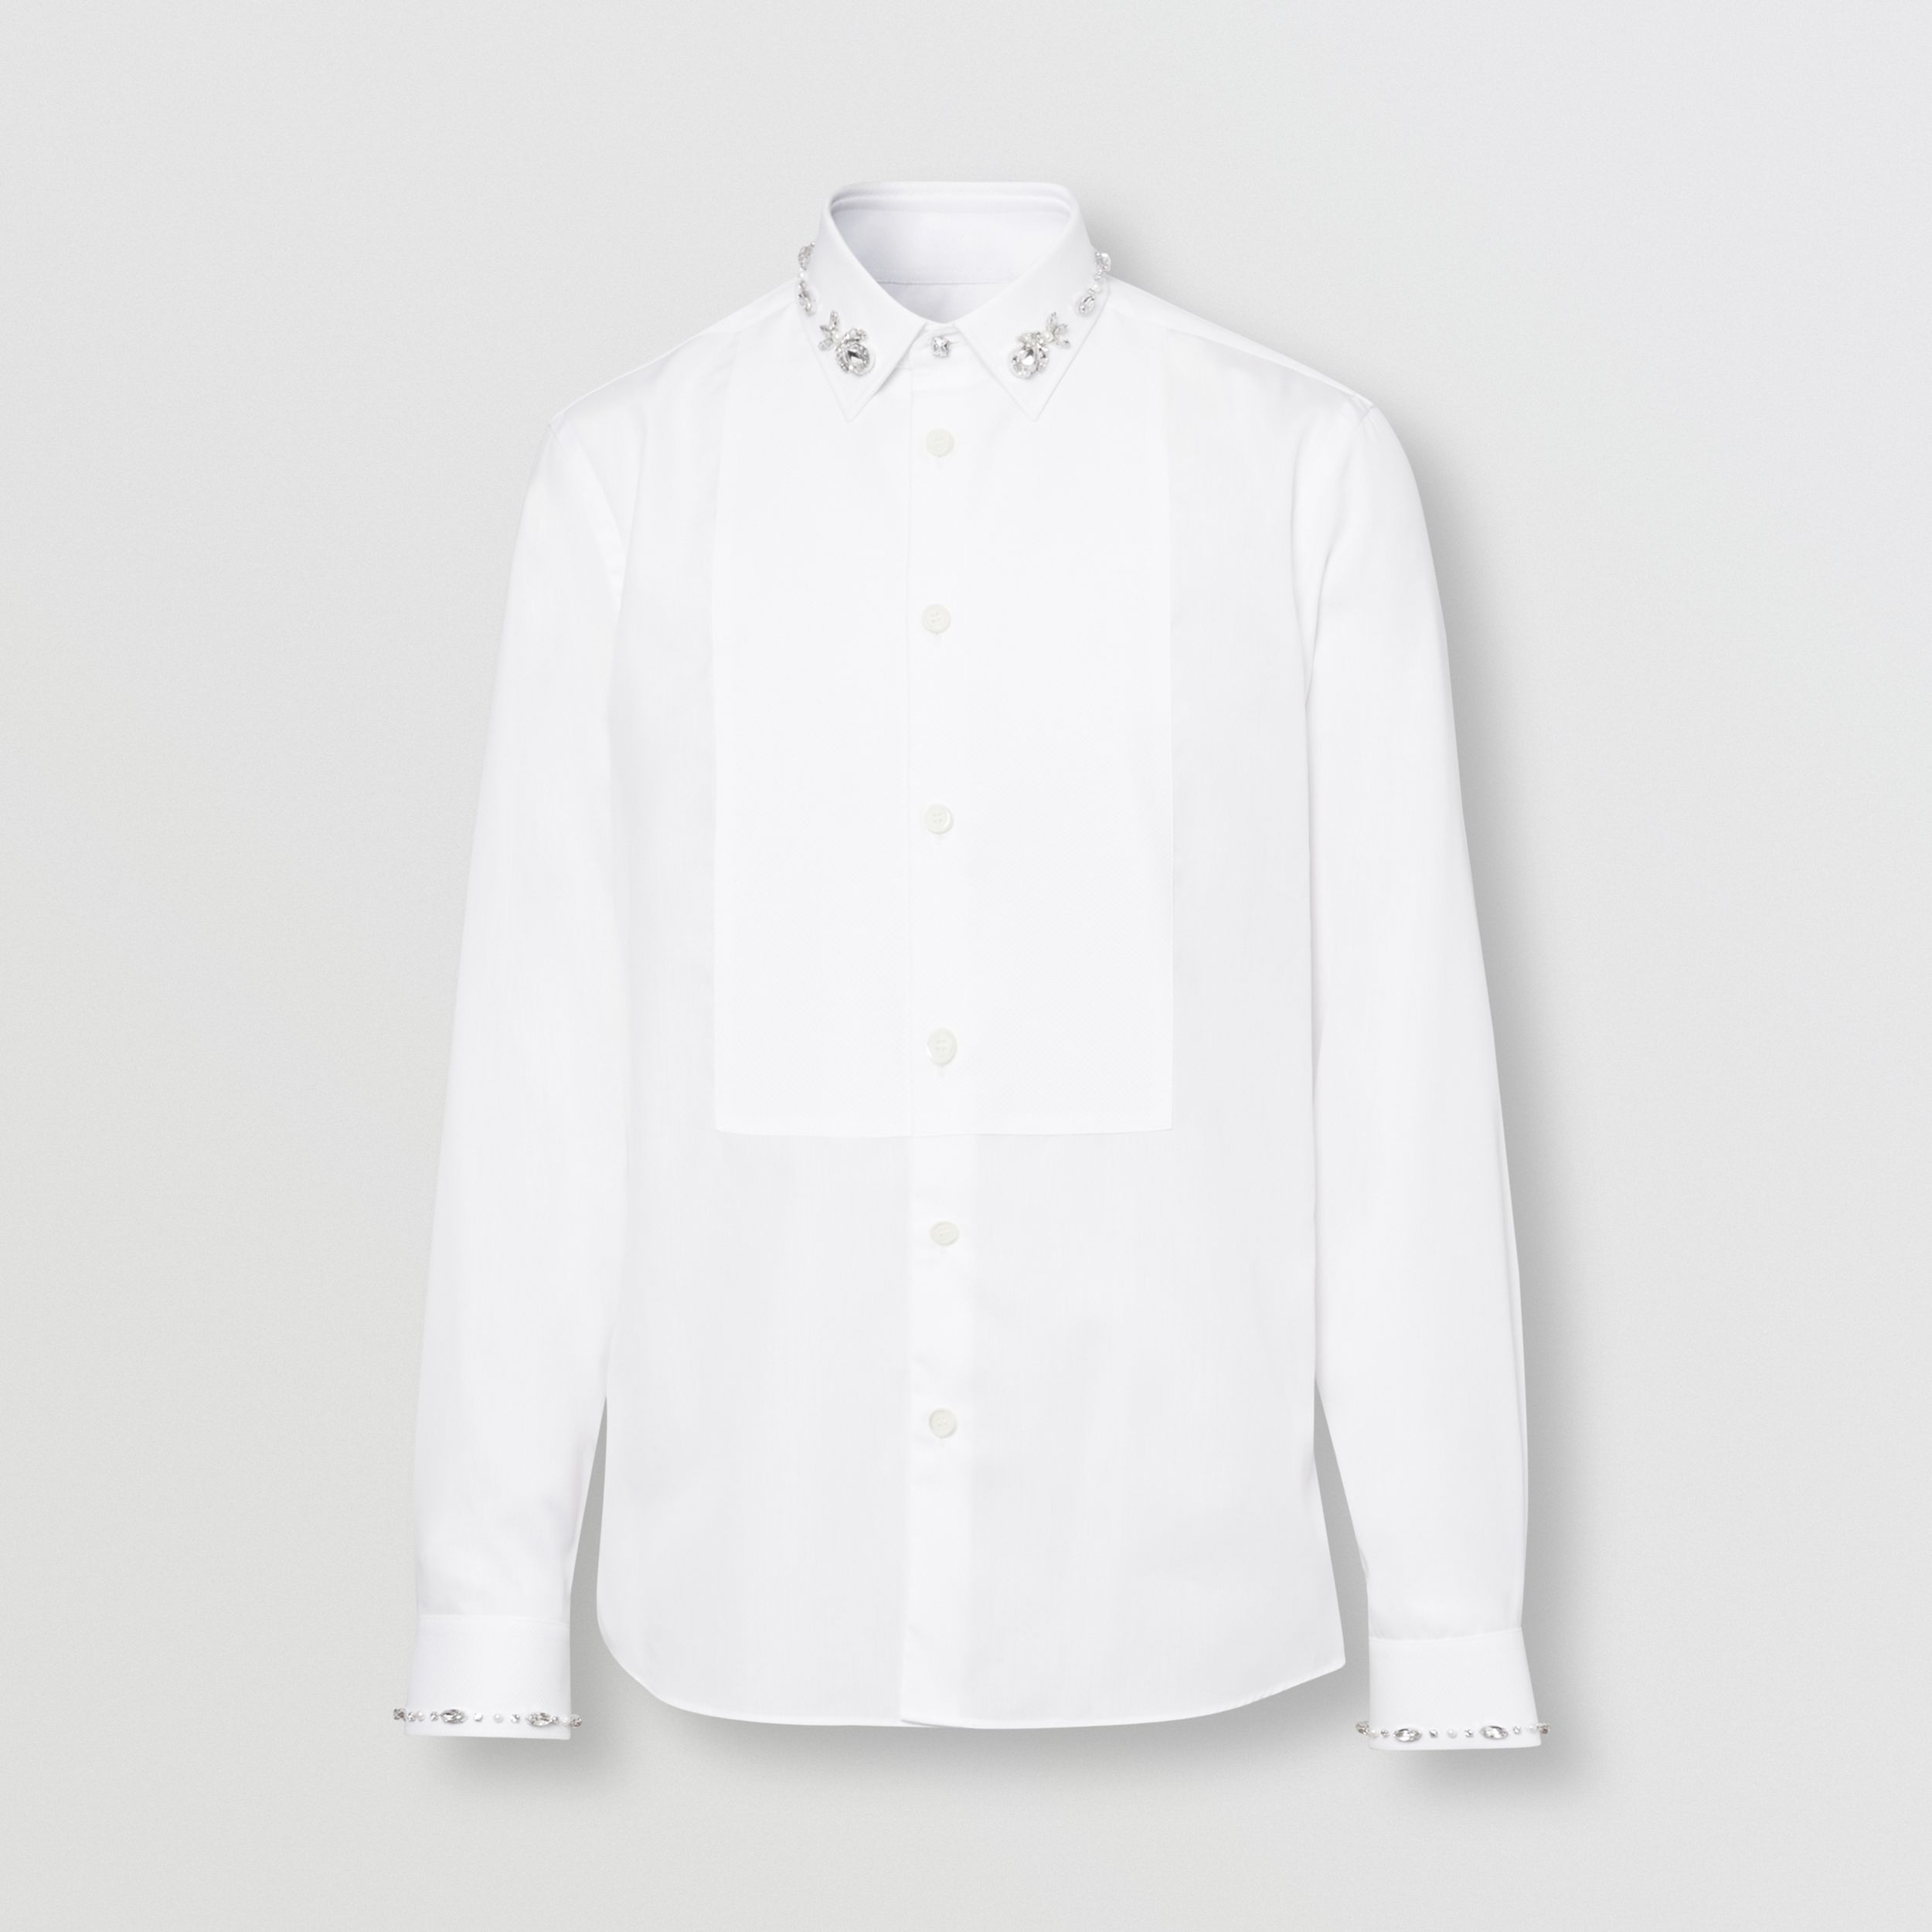 Slim Fit Embellished Cotton Poplin Shirt in White - Men | Burberry Australia - 4